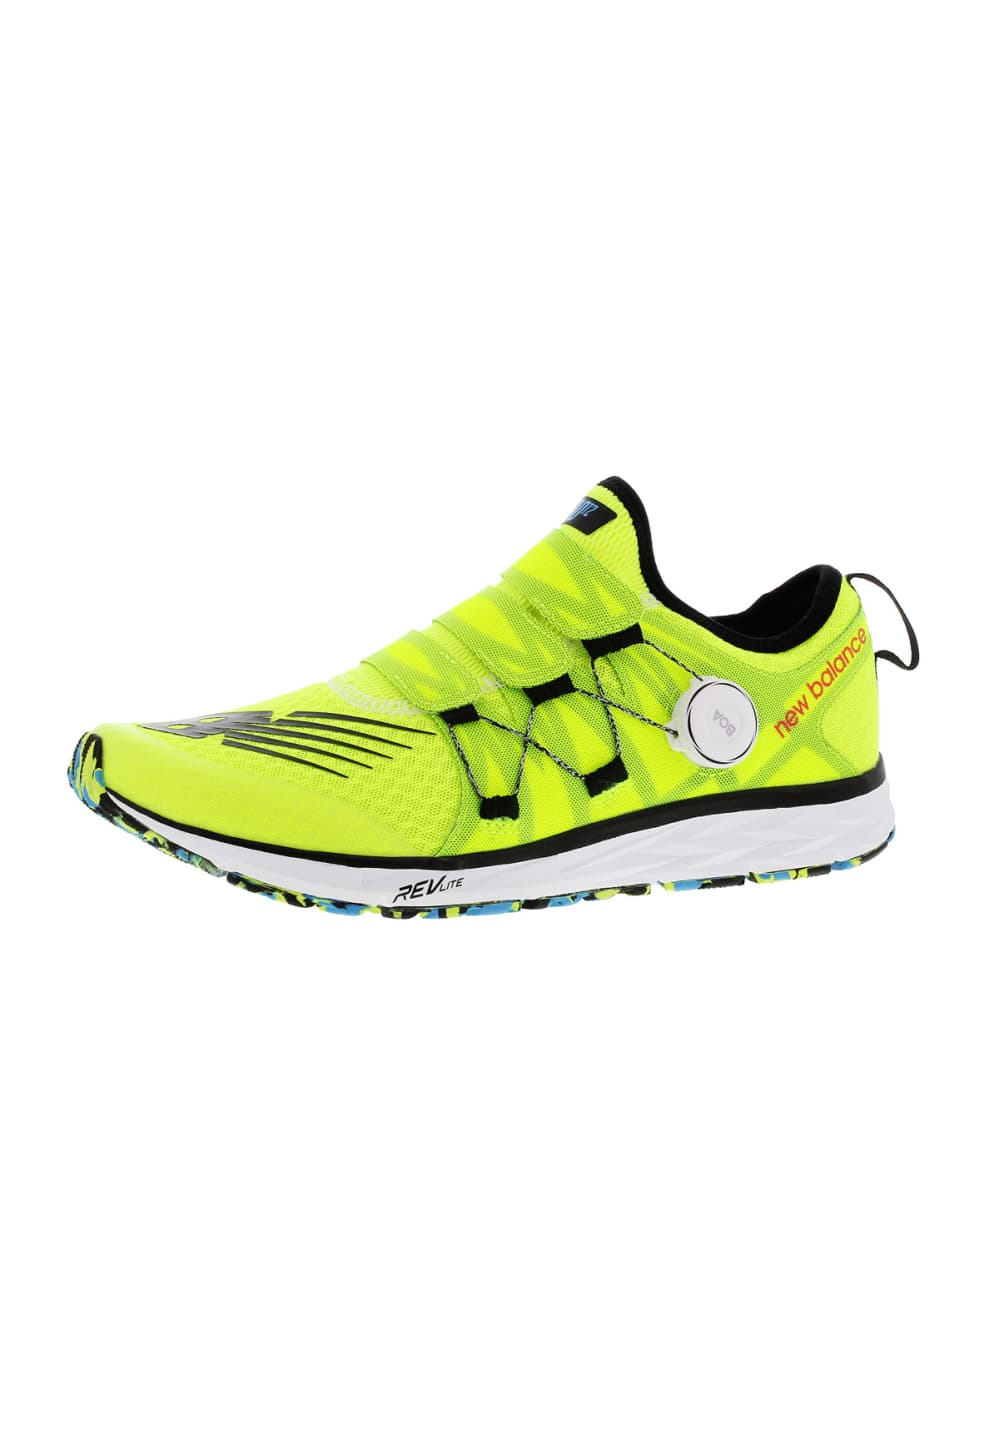 meilleur service 8a553 c15db New Balance 1500Boa - Running shoes for Men - Yellow